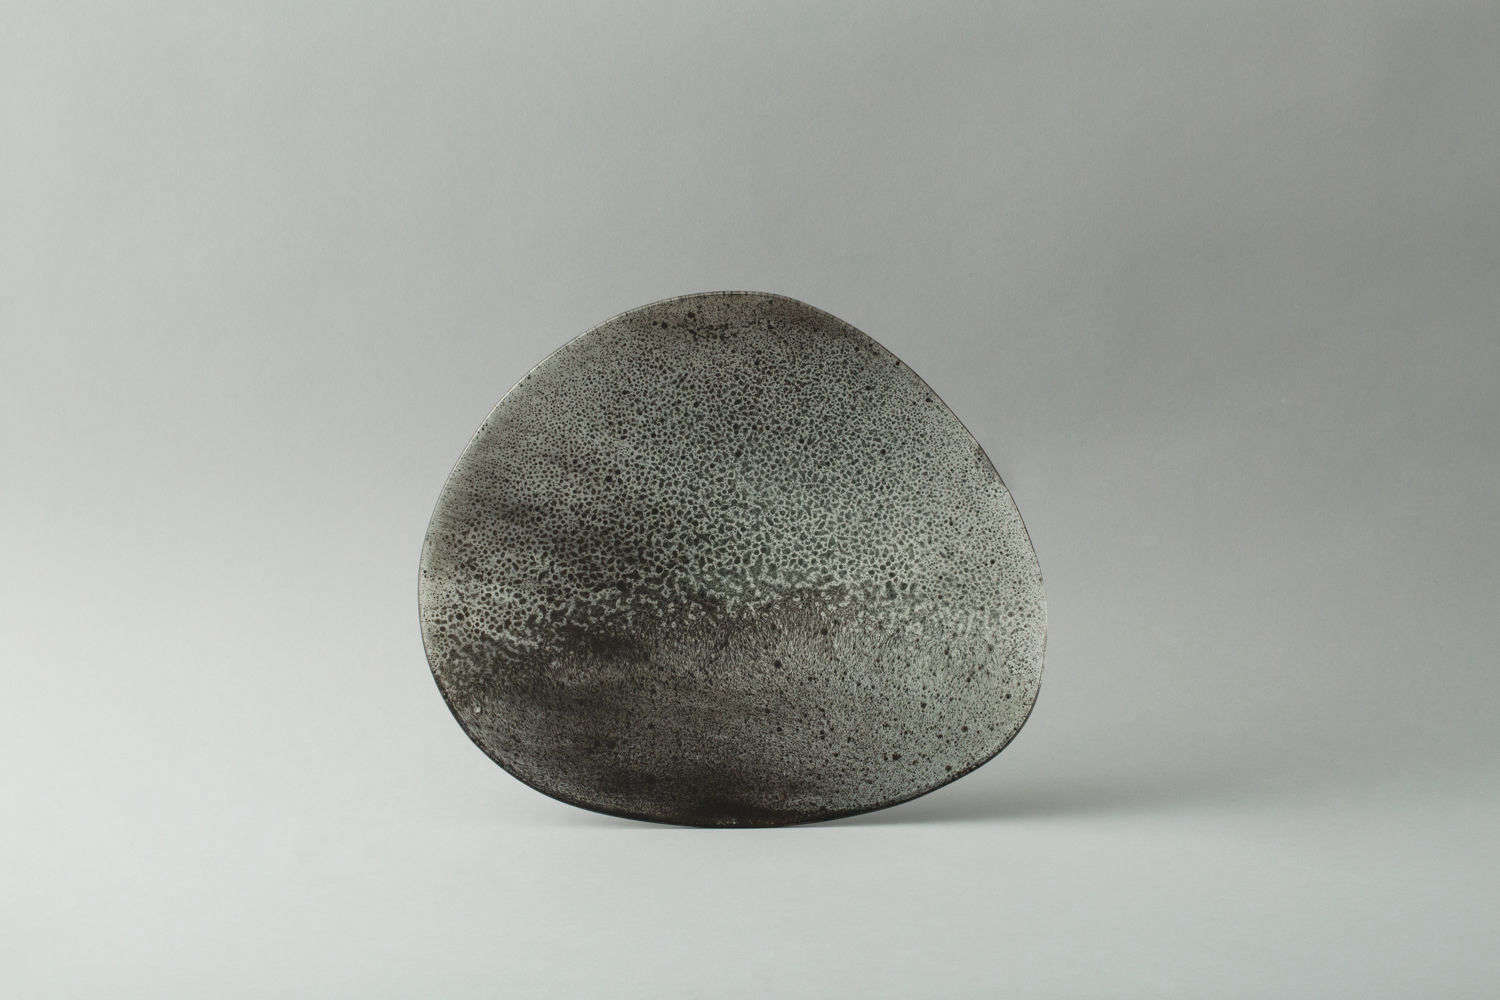 The Speckled Mirror, like the black mirror, has a textured and misshapen quality.